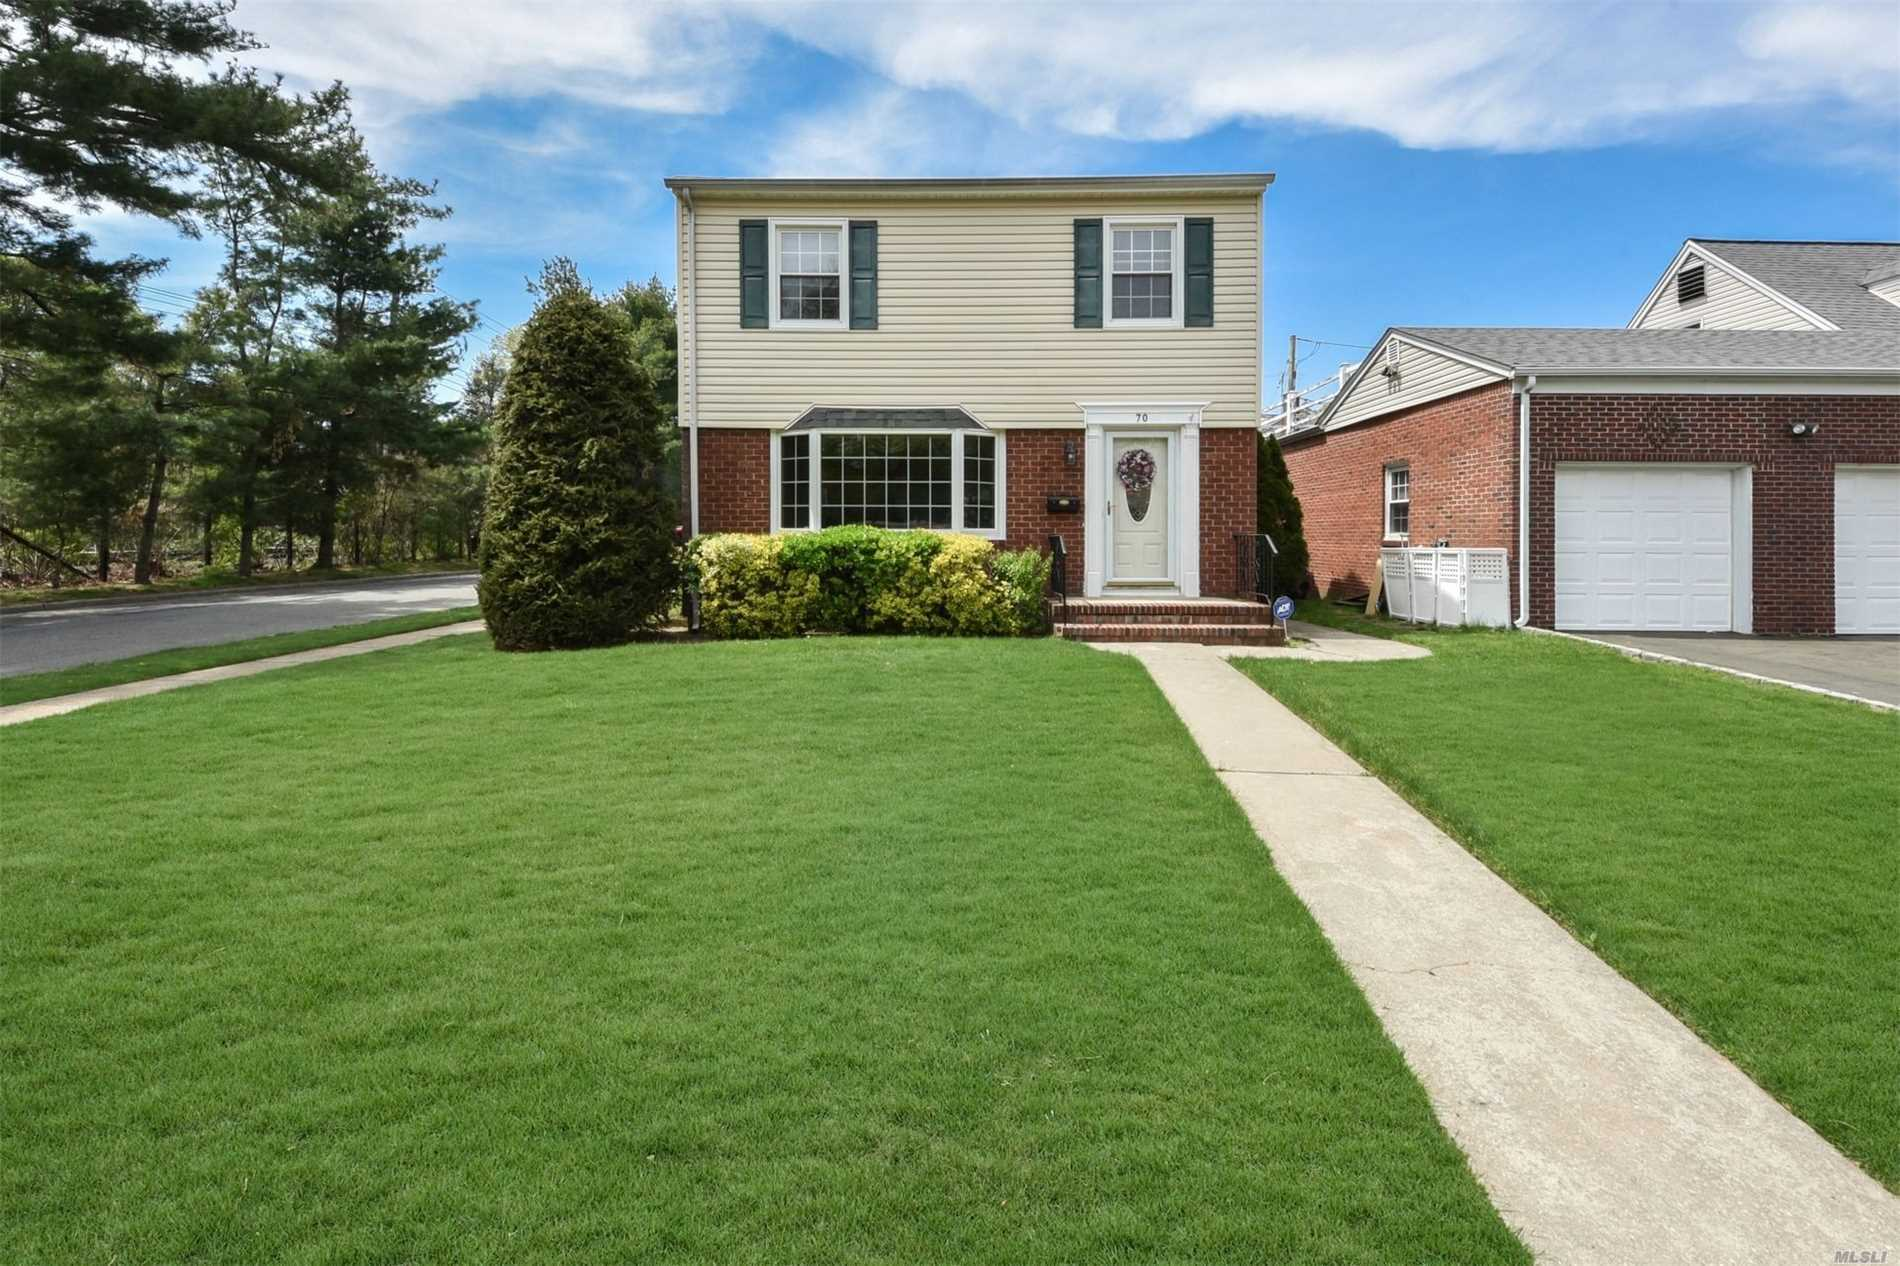 70 Jackson St, Garden City, NY 11530 - MLS 3028486 - Coldwell Banker